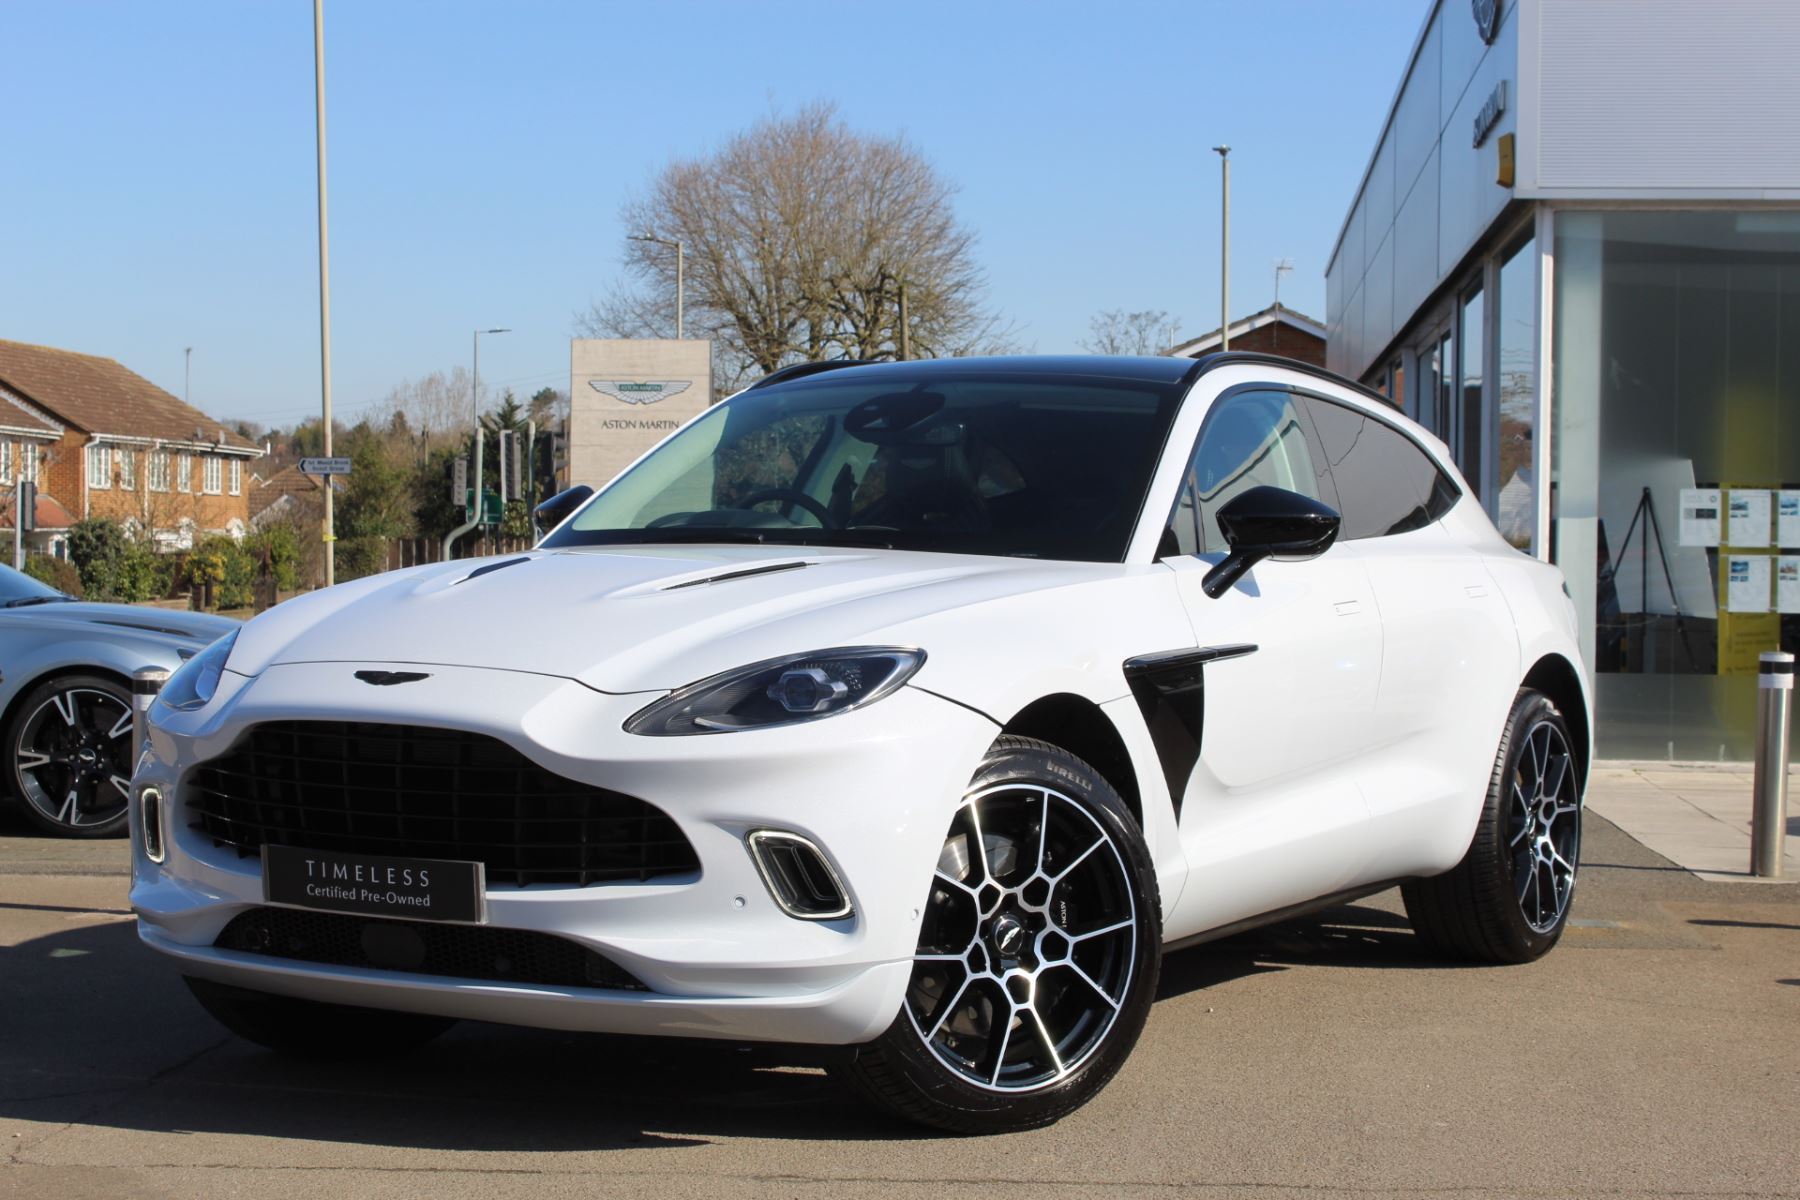 Aston Martin DBX V8 550 Touchtronic 4.0 Automatic 5 door Estate (2021) image